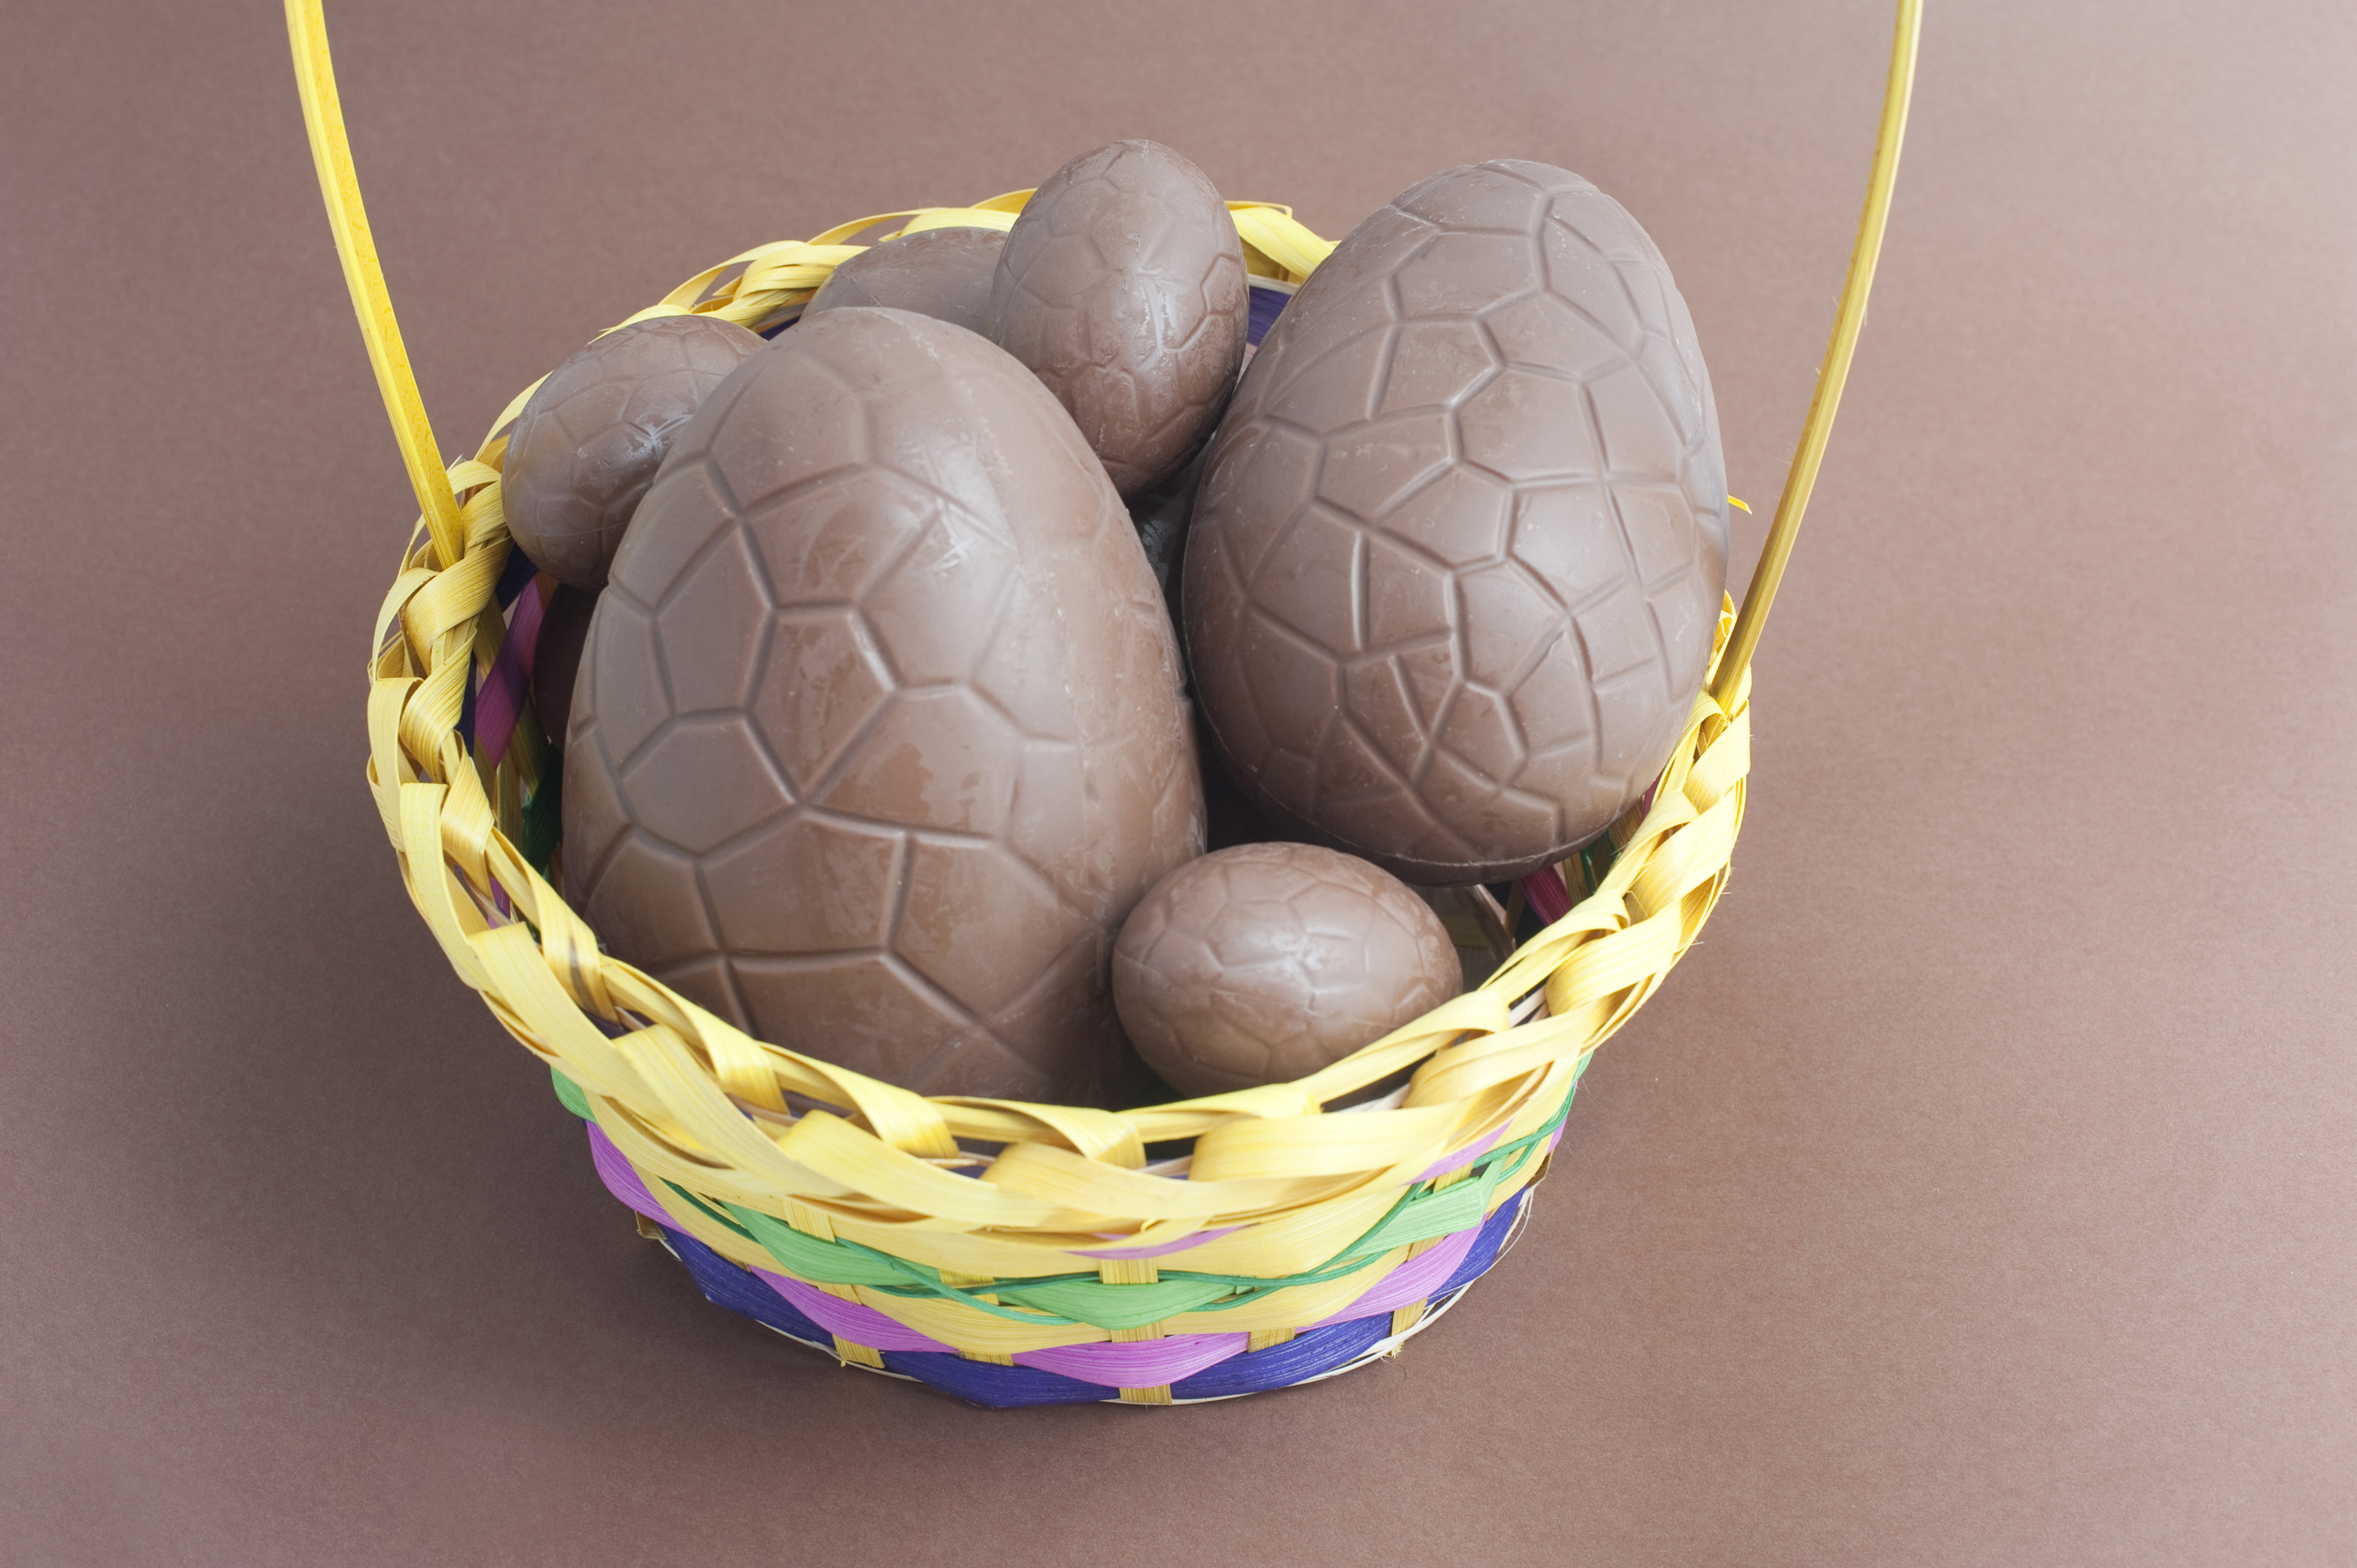 easter_chocolate_basket.jpg - Decorative basket filled with milk chocolate Easter Eggs on a brown background